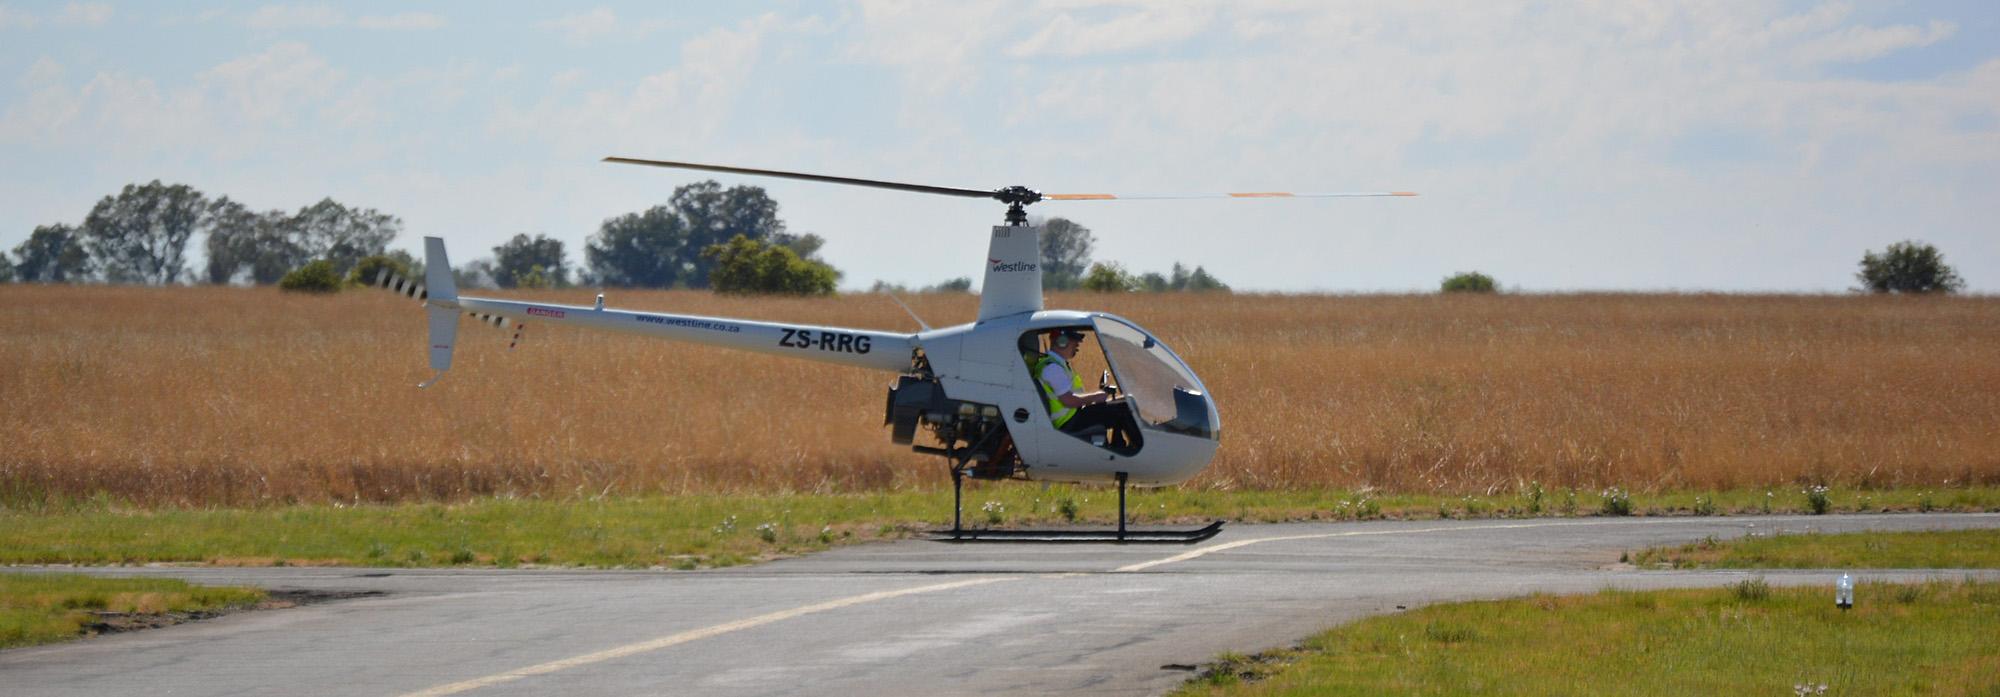 Helicopter training image